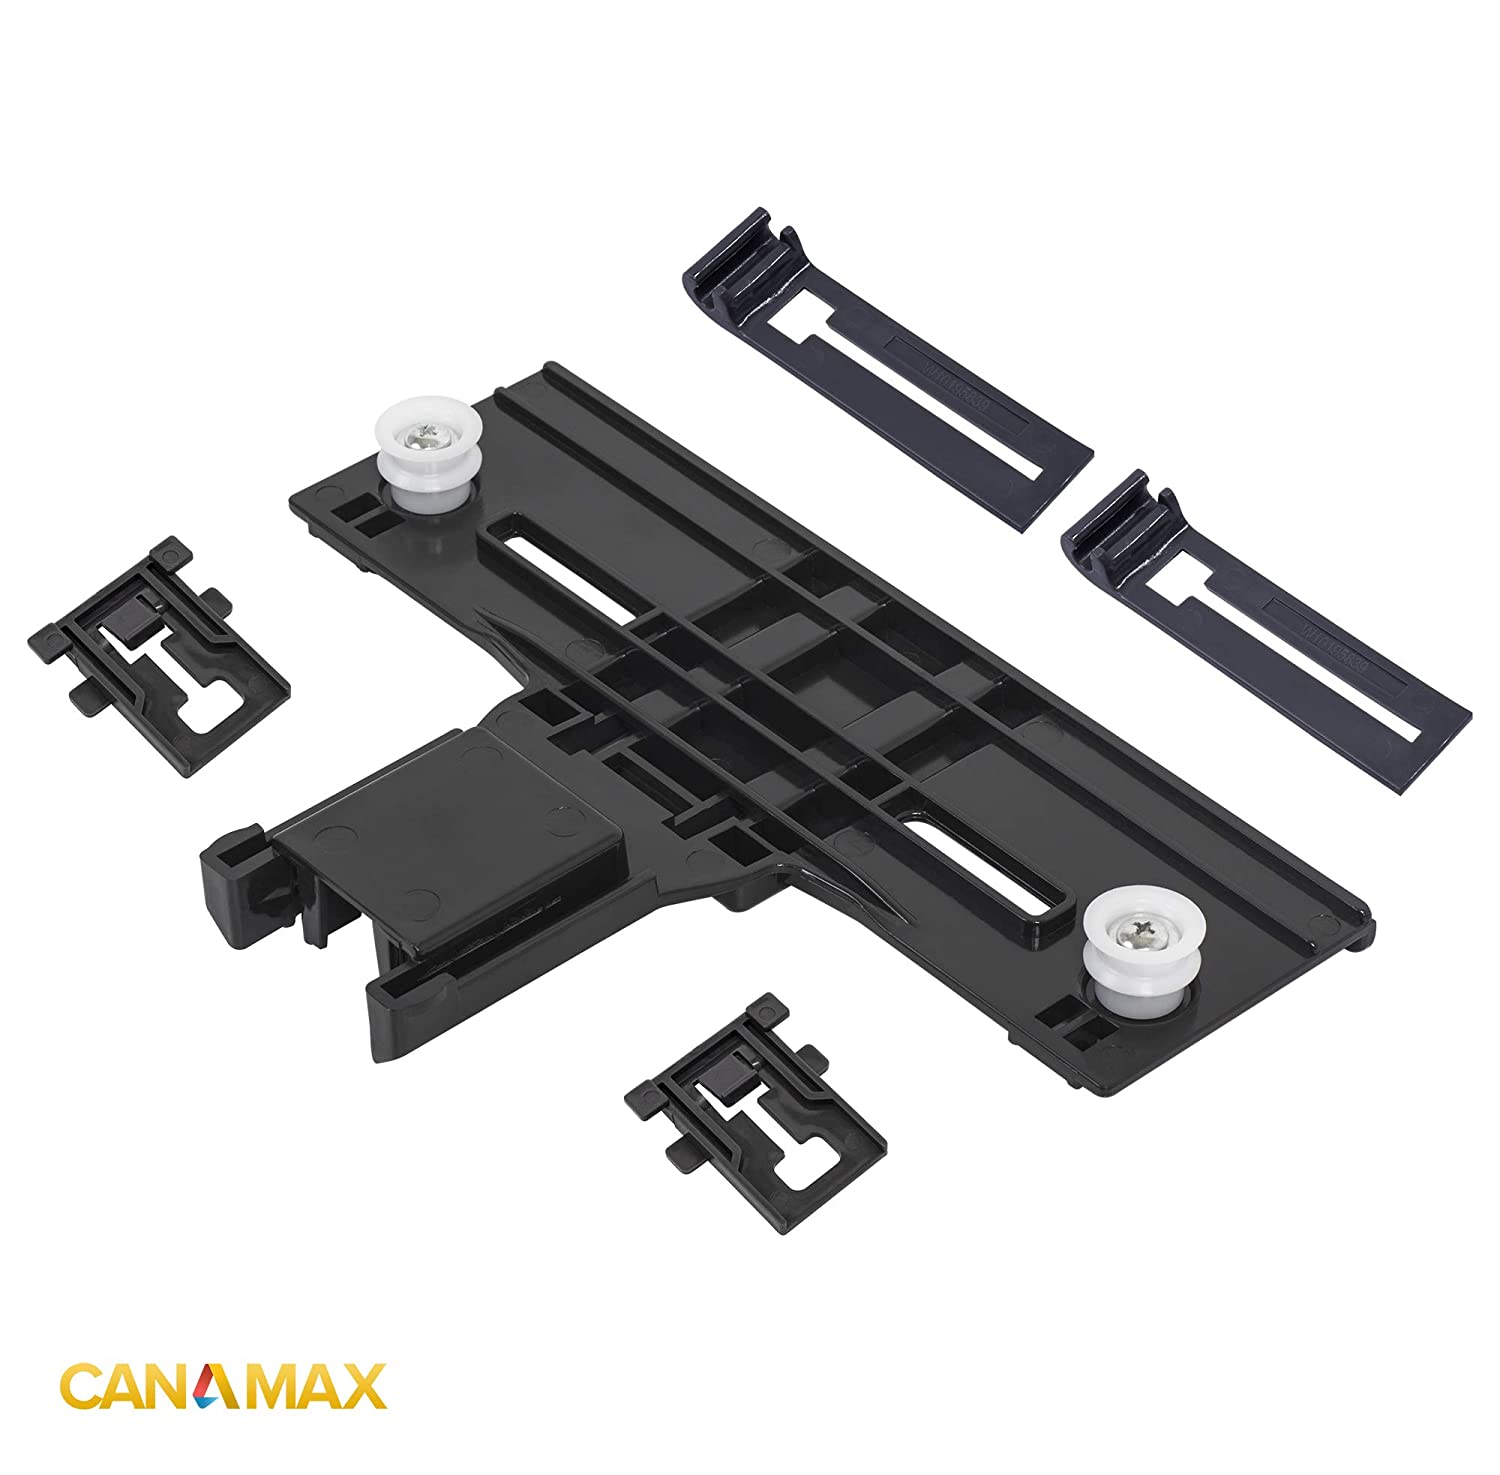 W10350376 /& W10195840 /& W10195839 Dishwasher Rack Adjuster Kit Premium Replacement Part by Canamax WPW10350376 Replaces W10418323 Compatible with Kenmore /& KitchenAid Dishwashers W10712394